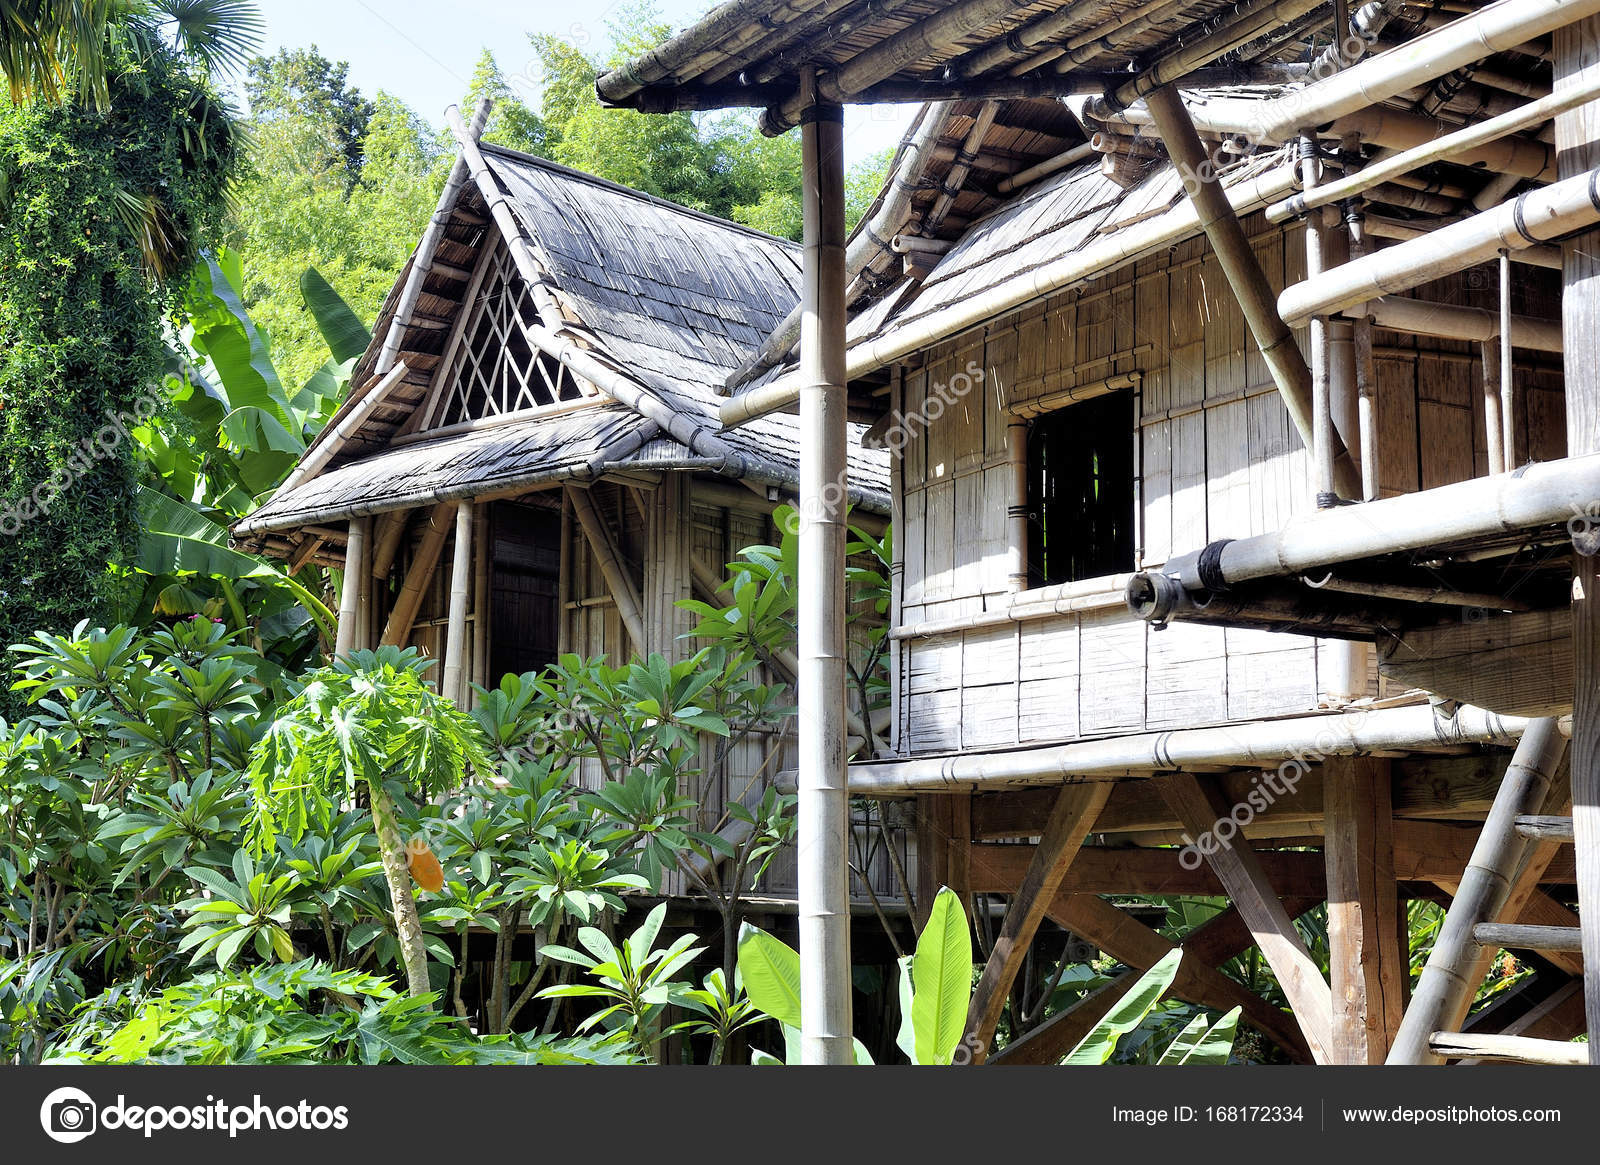 reproduction of a Laos house in the Anduze bamboo plantation Stock